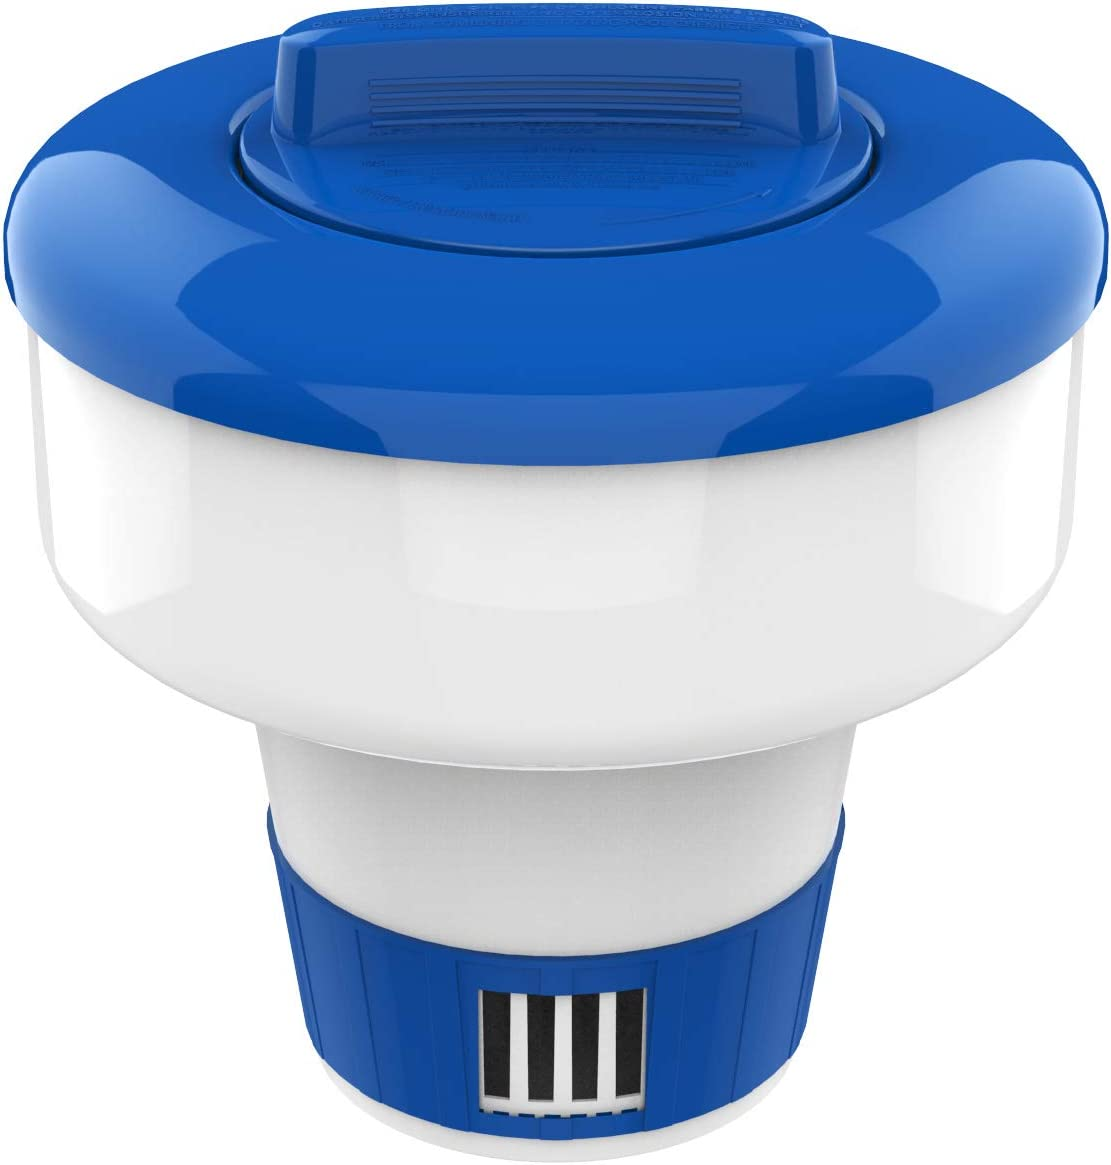 """Housolution 7-inch Floating Chlorine Dispenser, Large Capacity-Fits 3"""" Chlorine Tablets, Adjustable Release Tablet Floater for Indoor & Outdoor Swimming Pool SPA, Blue & White"""